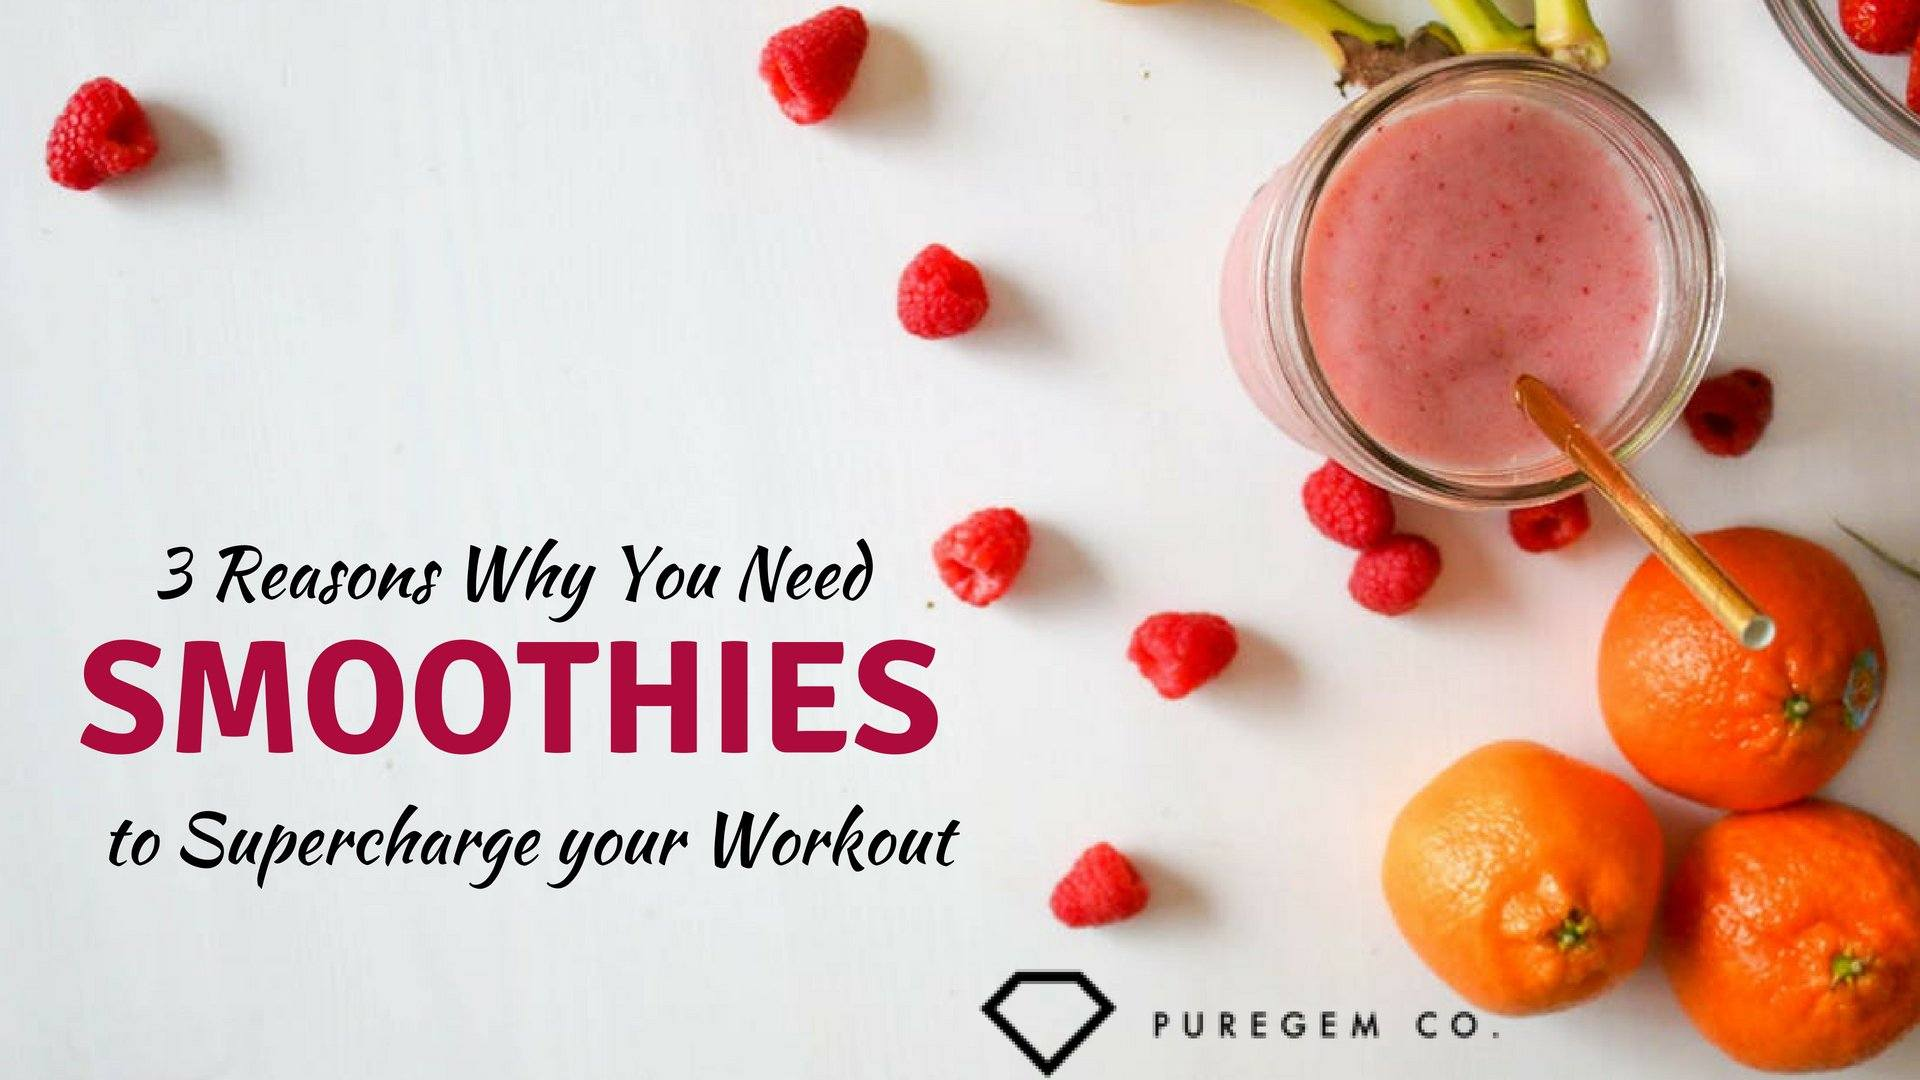 3 Reasons Why You Need Smoothies to Supercharge your Workout